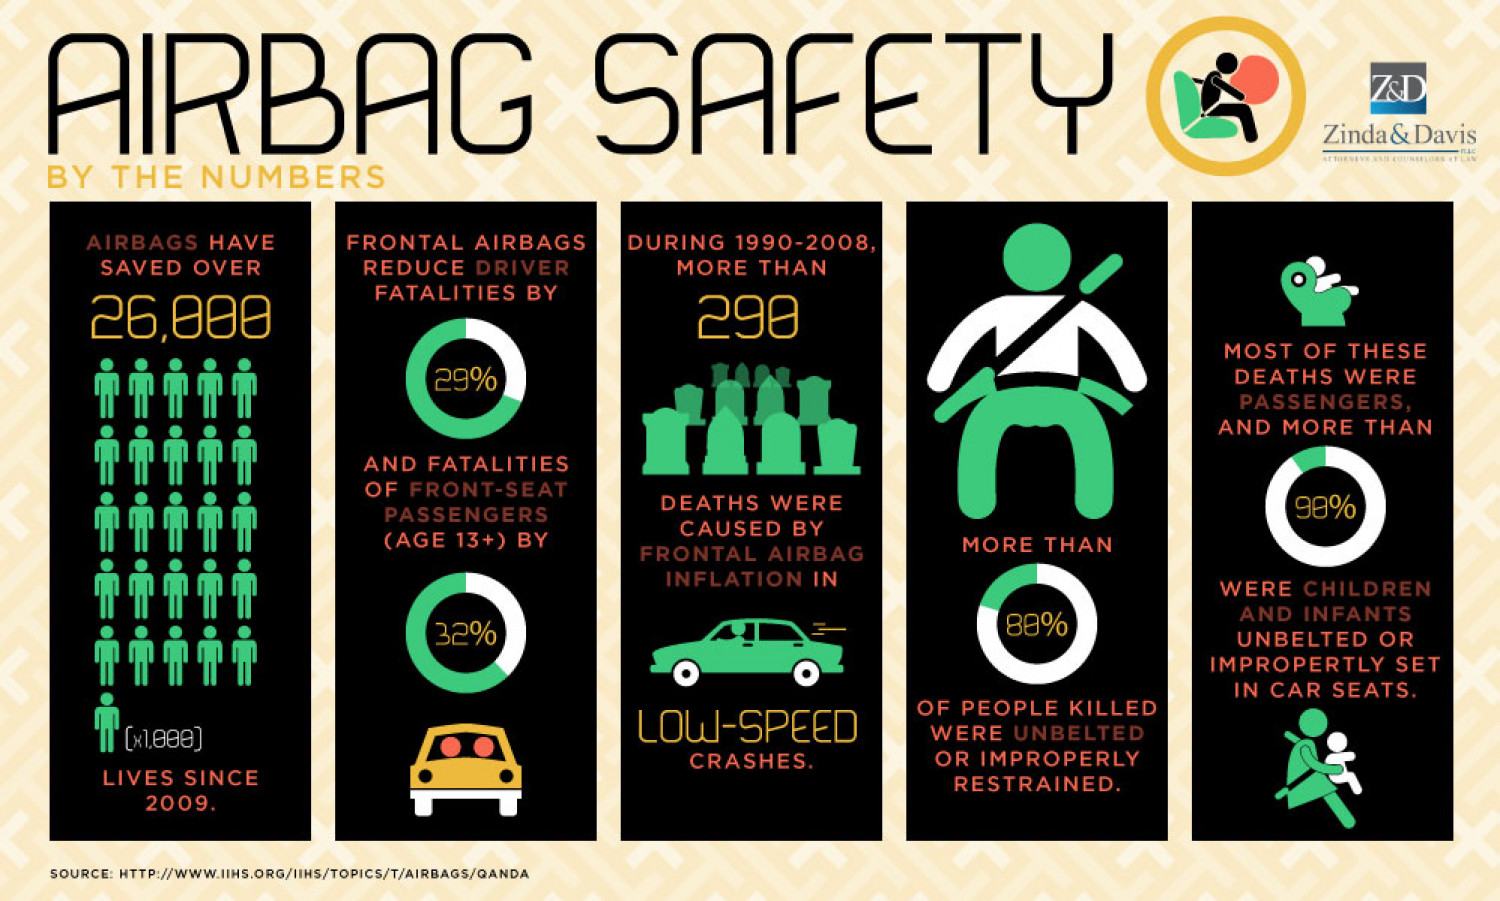 airbag-safety-by-the-numbers_54694a5fe75